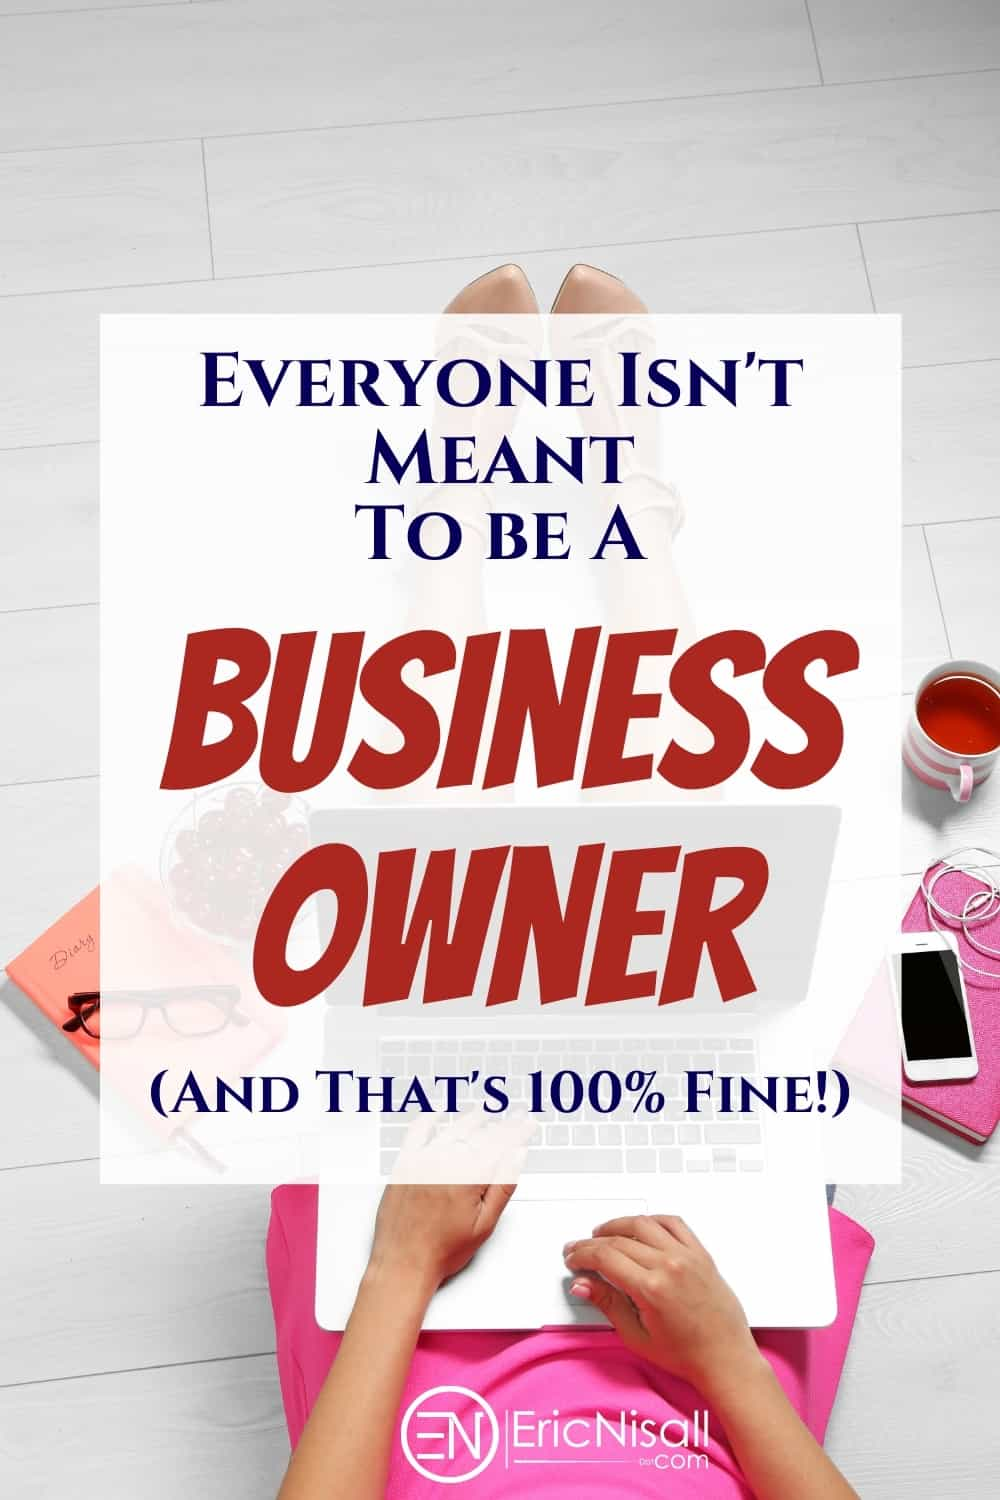 There's a lot of advice about entrepreneurship on the web. The problem is that the biggest thing people need to know about being a business owner is often never mentioned! via @ericnisall